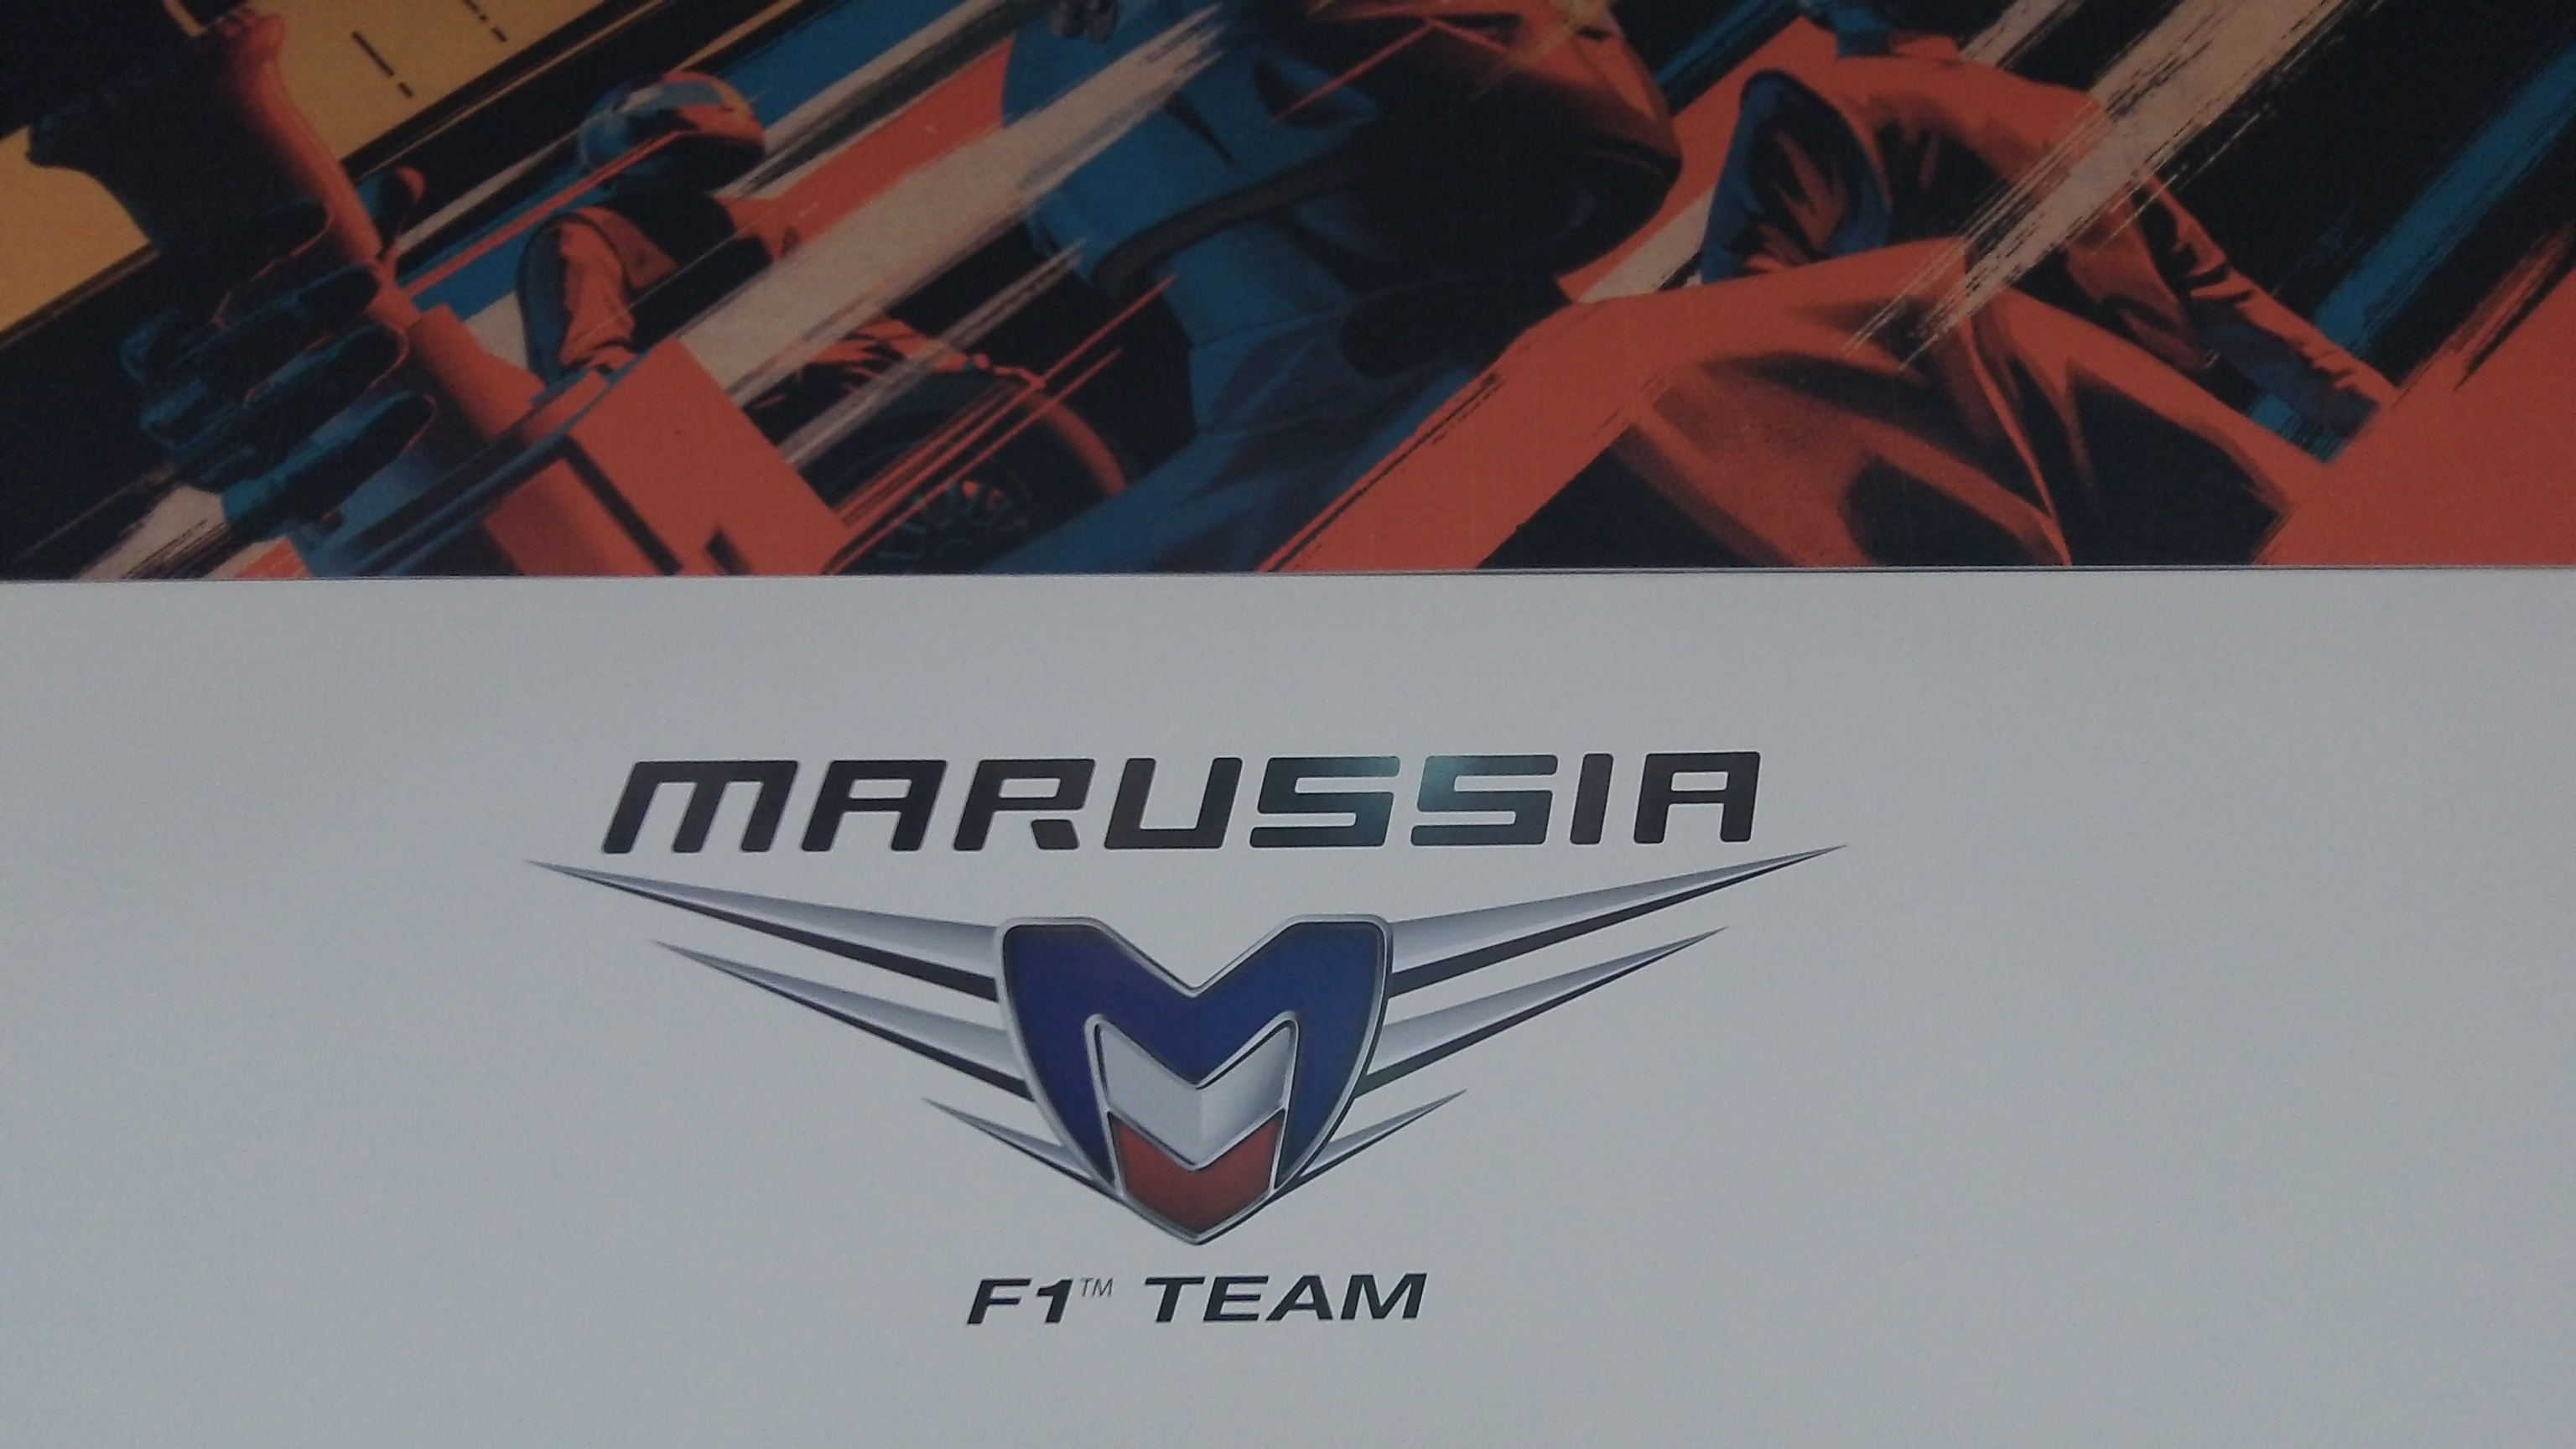 Timo Glock, Marussia F1 and Social Media